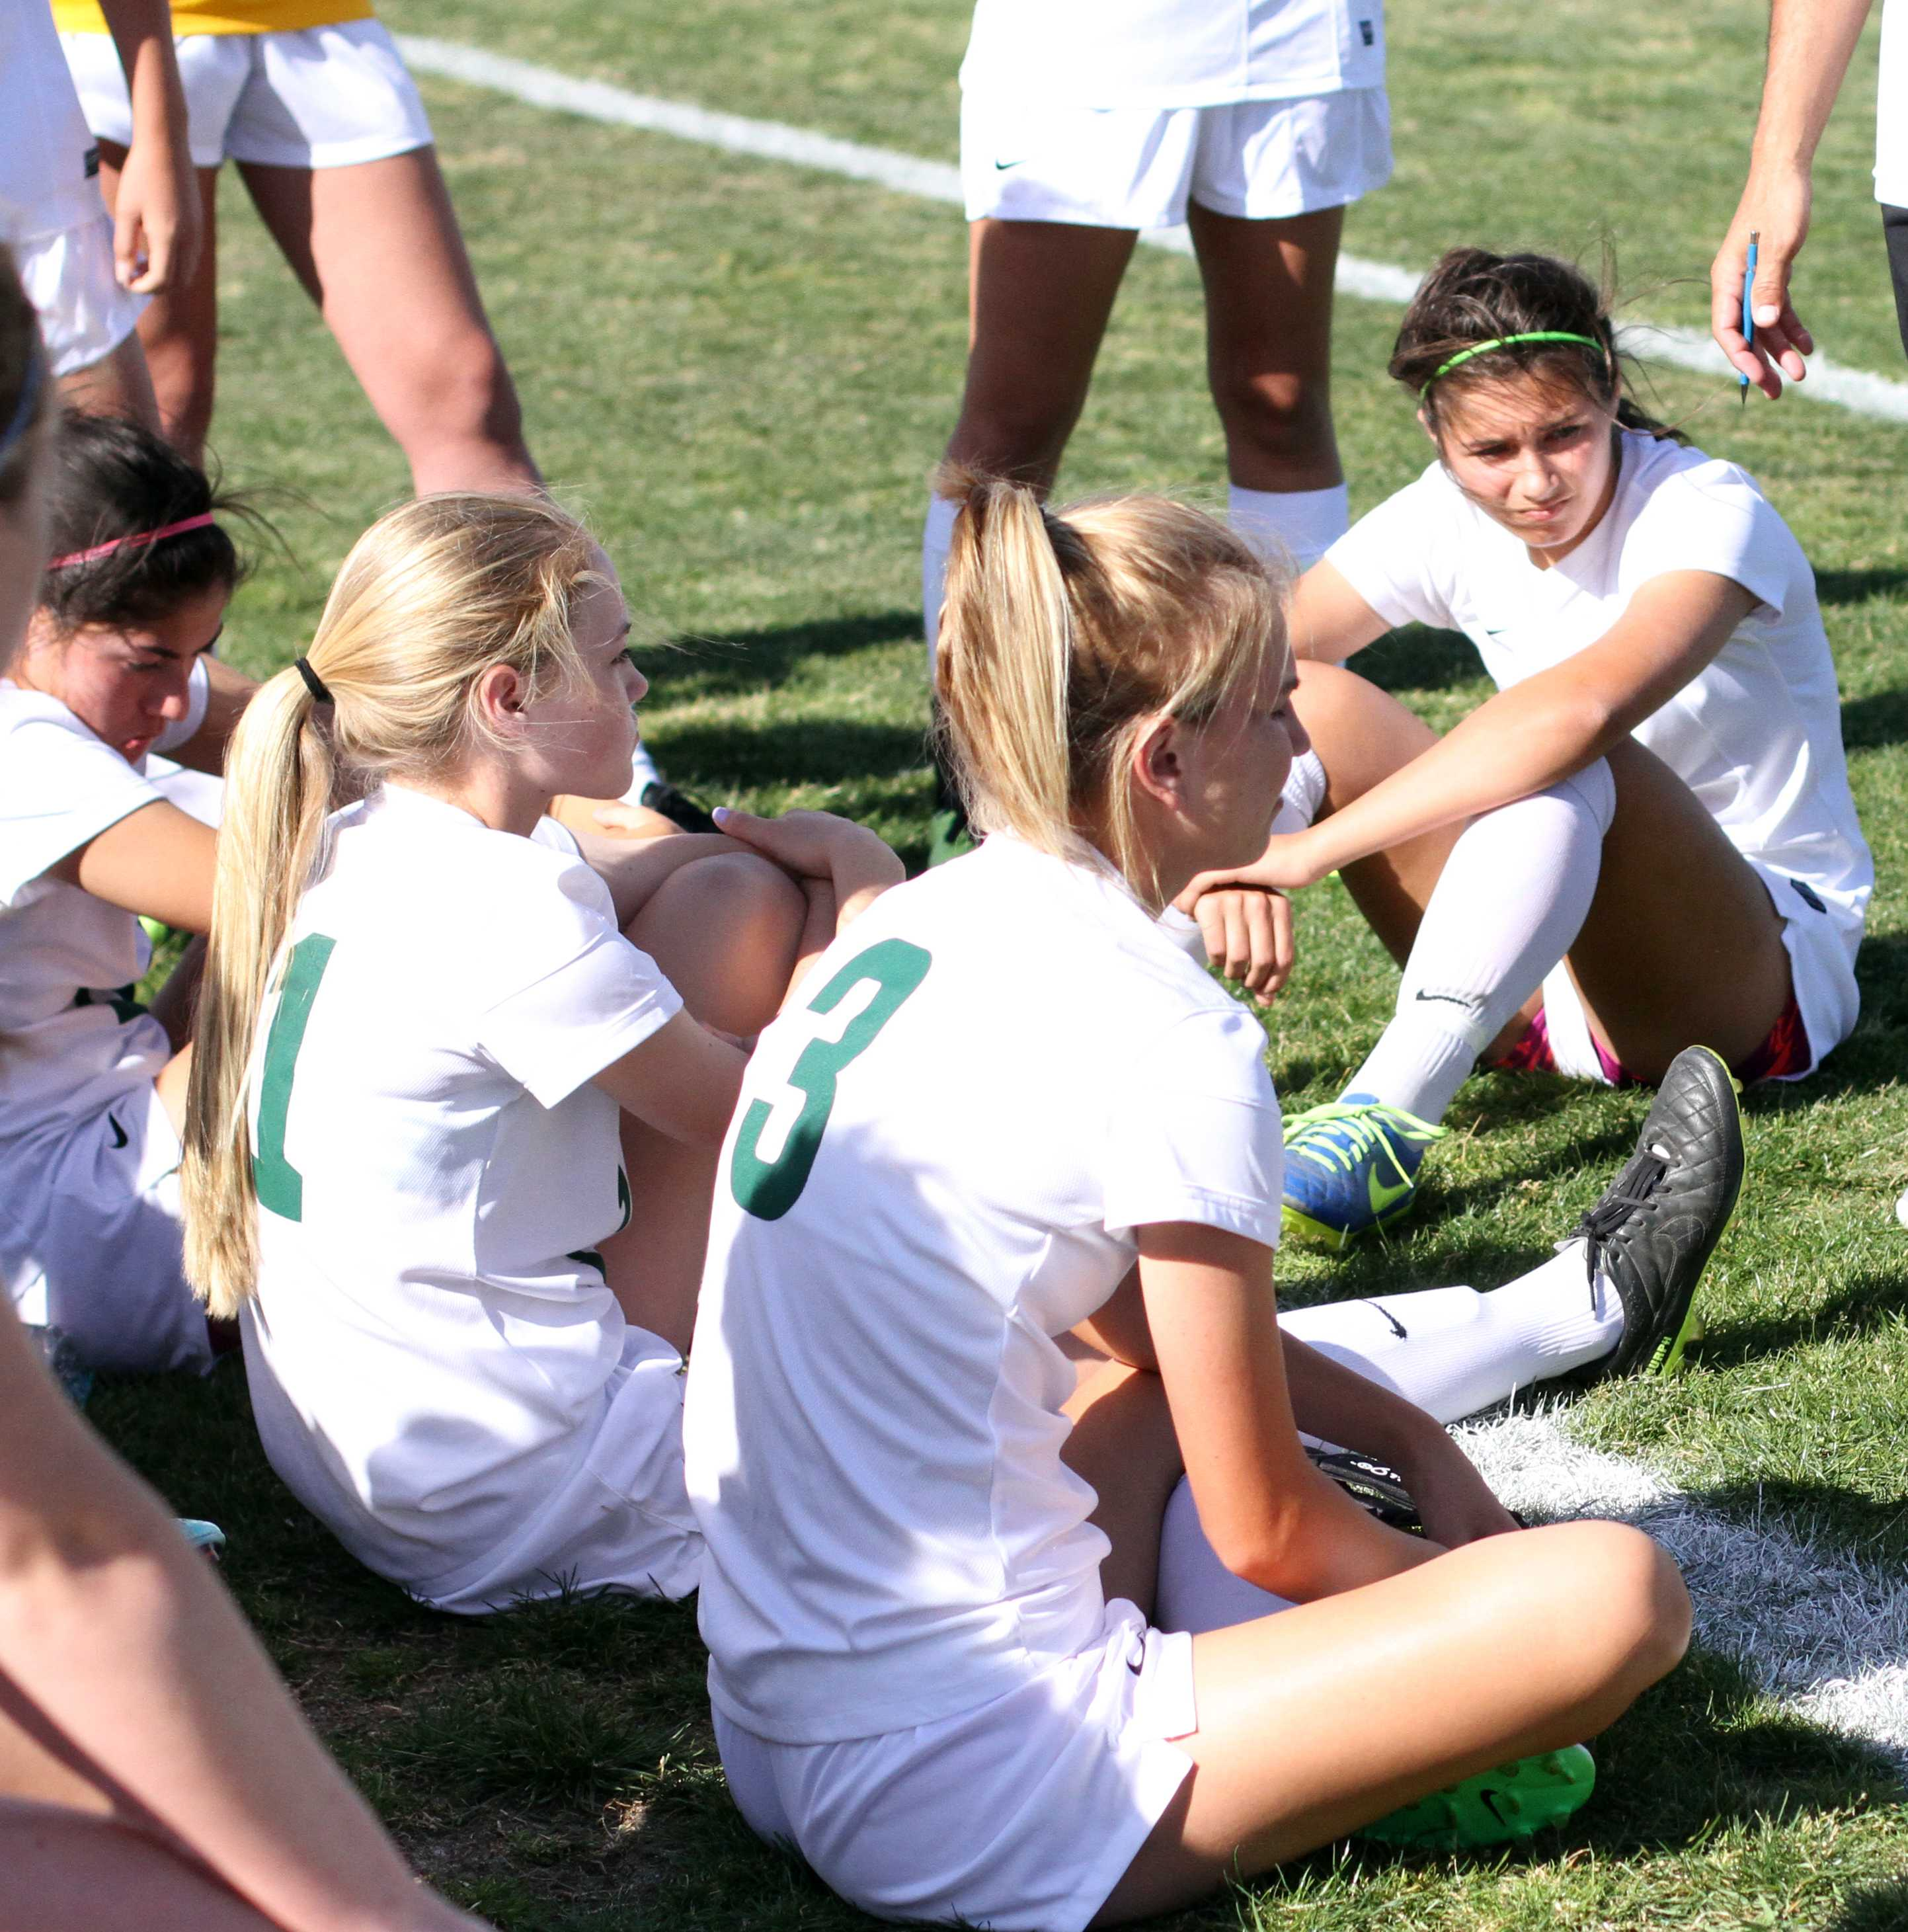 "Along with some of the Girl's Varsity Soccer team, freshman Isabella Perez sits on the floor during a time-out against Folsom. 20 minutes before the game ending with a tie of 1:1, their coach brings them all together to tell them strategies and encouragements for them to play diligently for the remaining time left. ""I must have determination when the game is about to end. I always try to leave it out on the field even if I am tired,"" Perez said. Photo by David Goni"